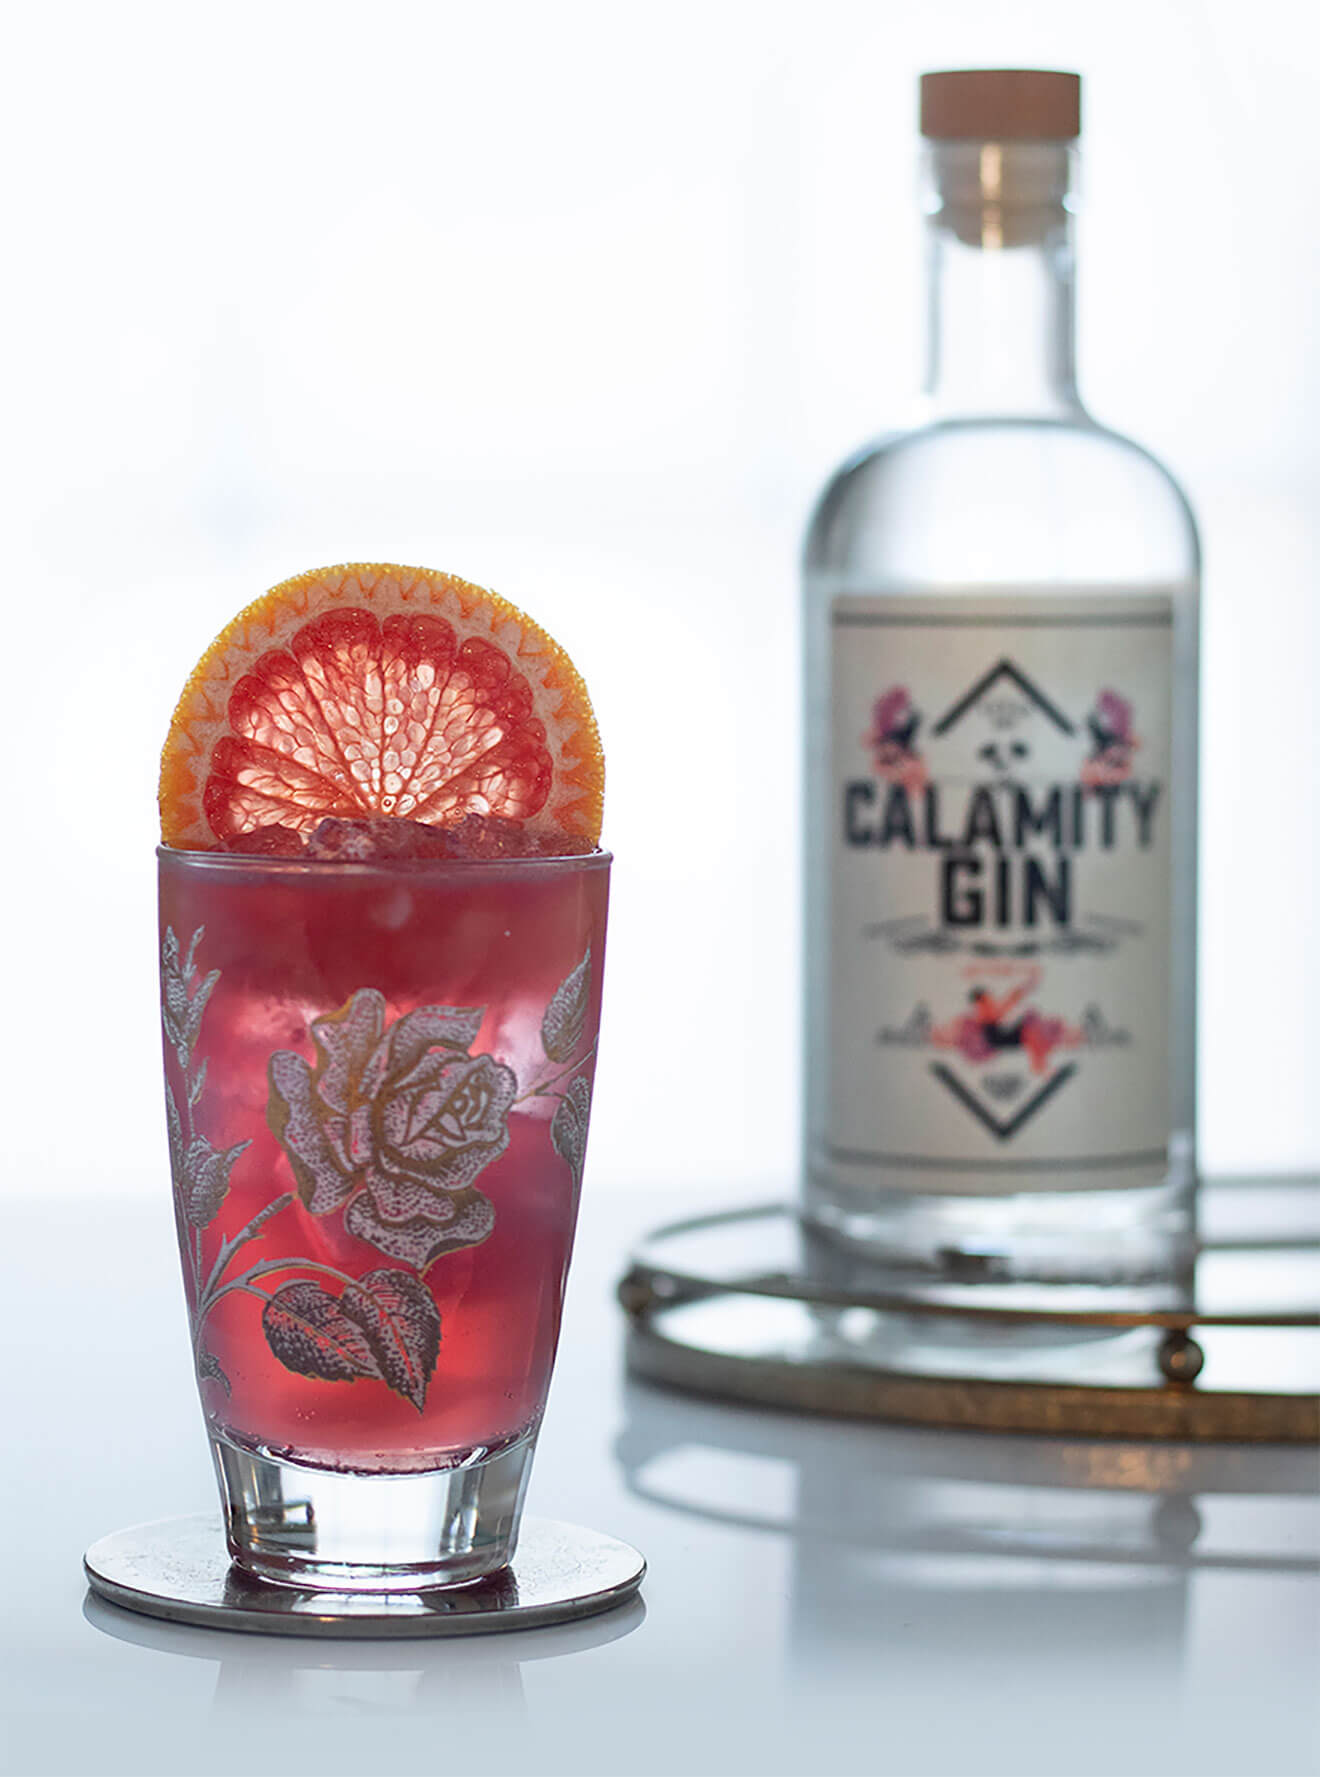 Calamity Garden G&T, cocktail with garnish and bottle on grey